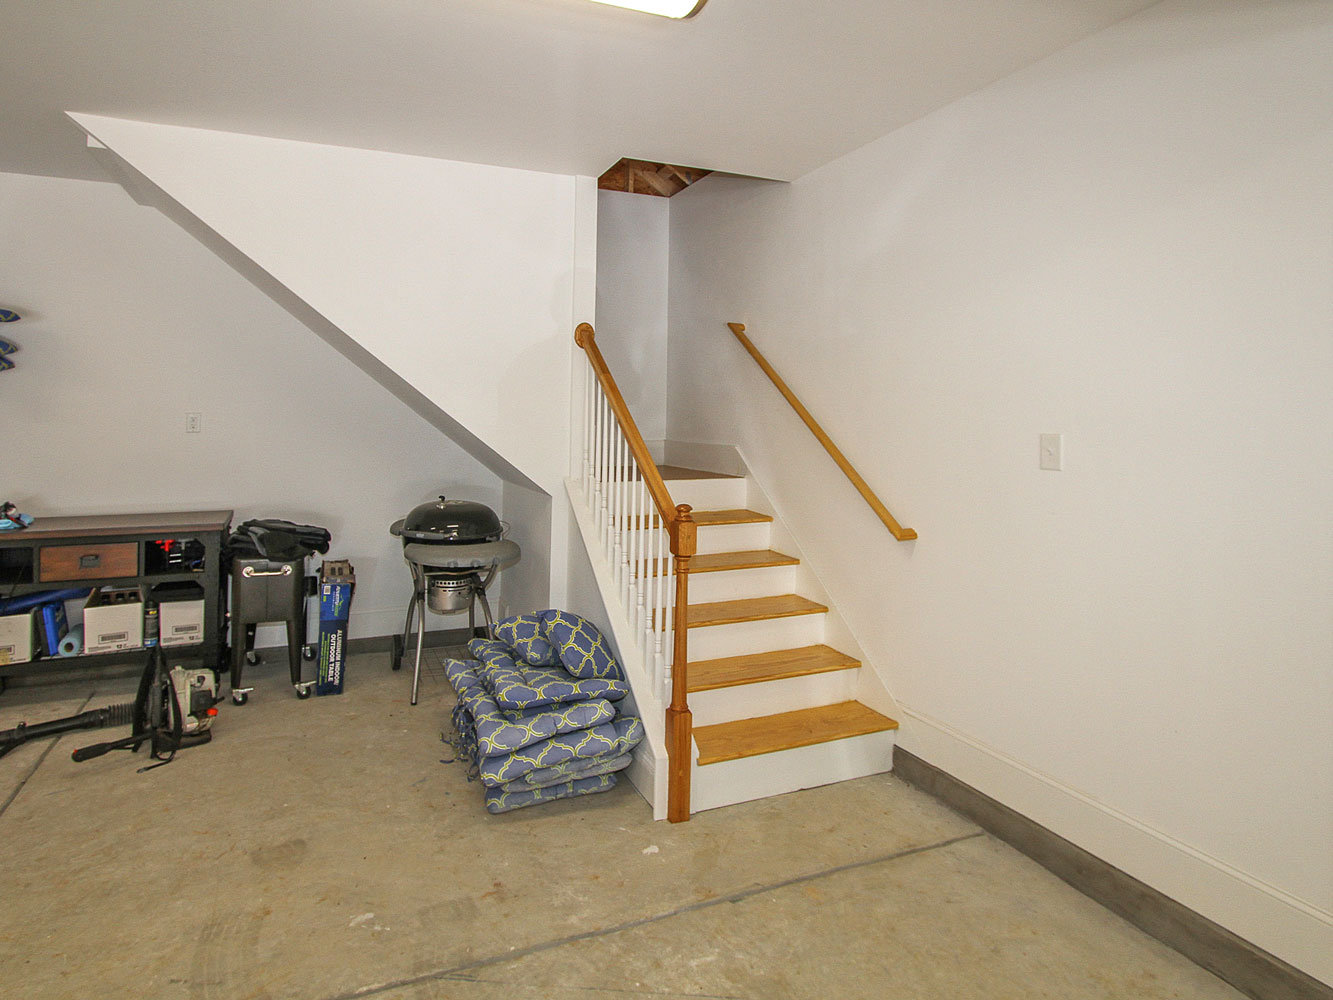 Park-Crossing-Detached-Garage_6272